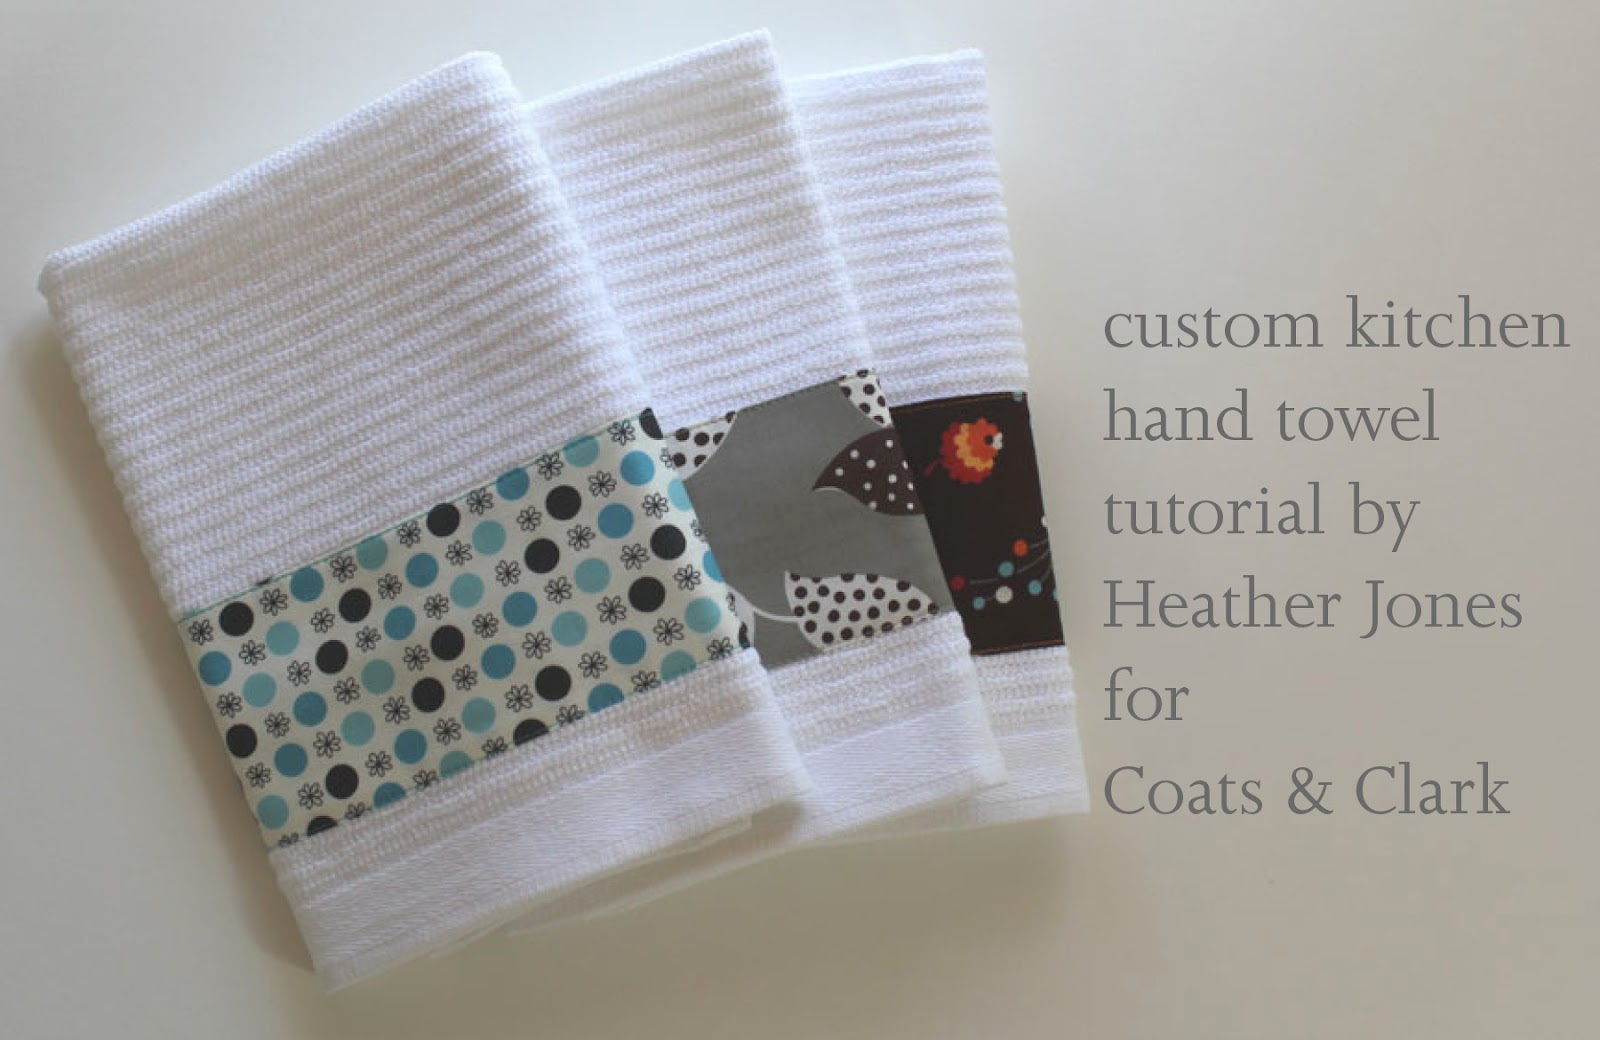 custom kitchen hand towels by heather jones - Kitchen Hand Towels